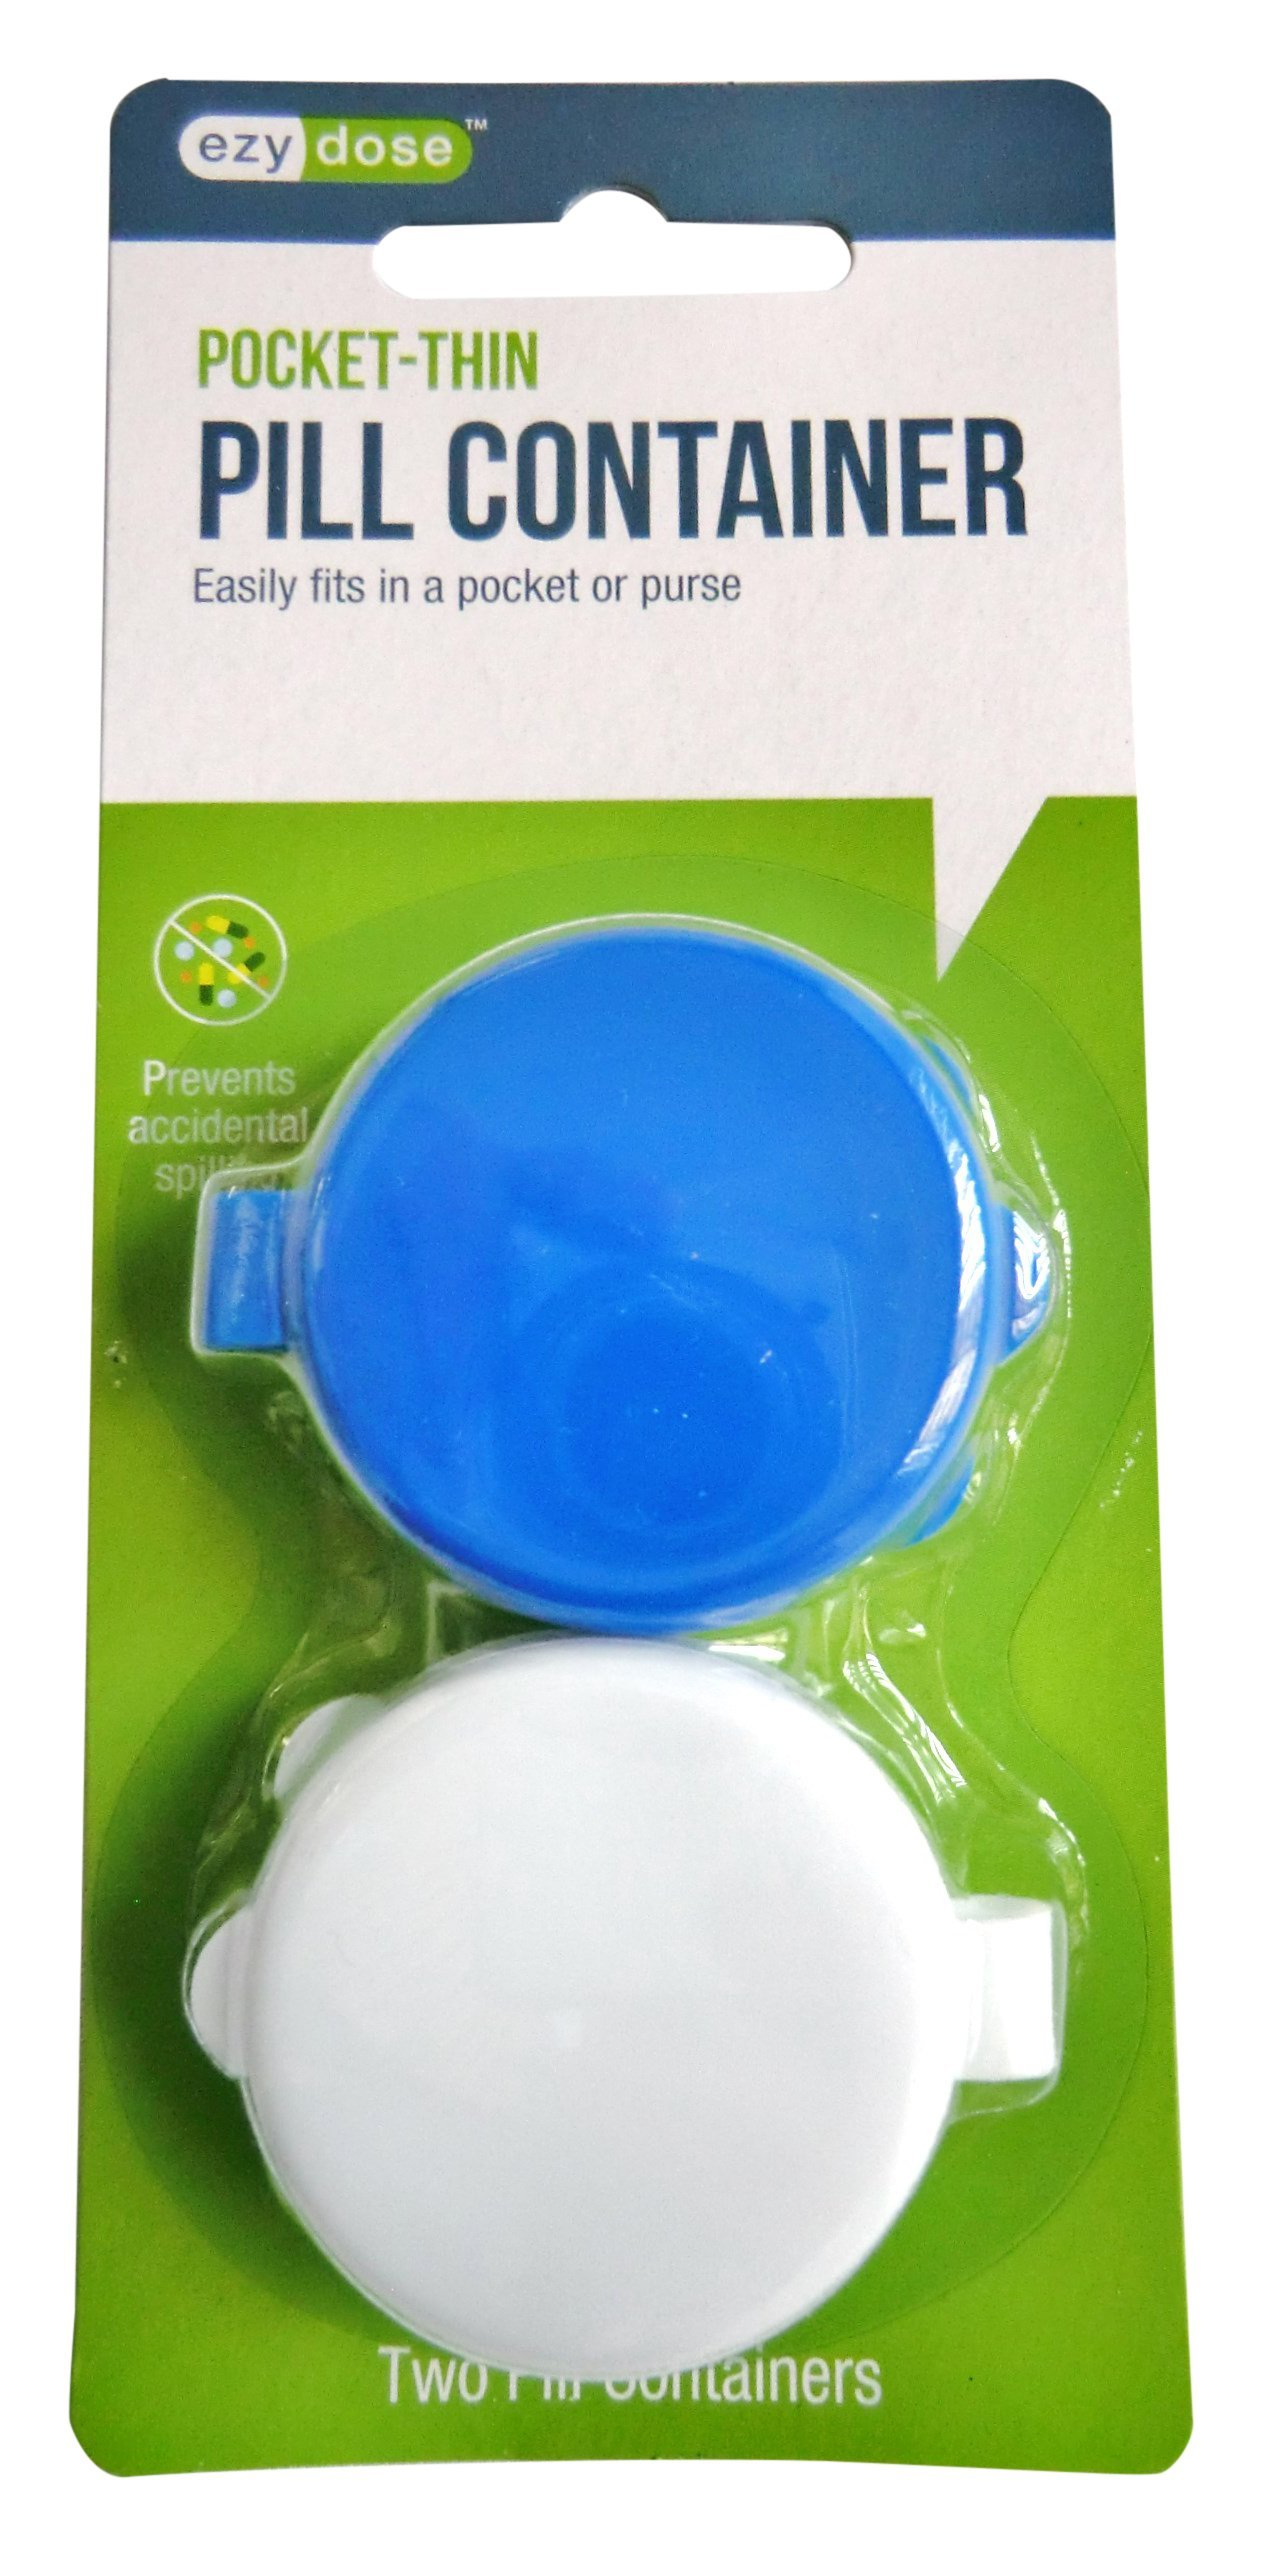 Ezy Dose Portable Pill Container (2 count) - assorted colors